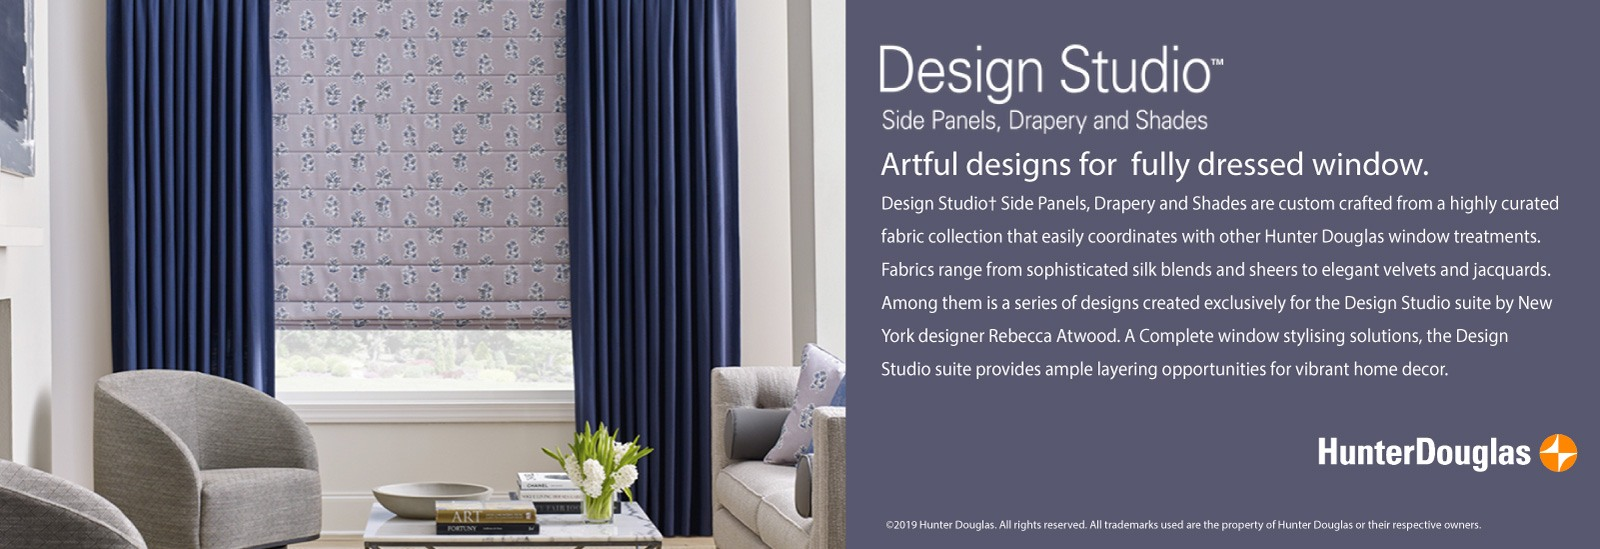 Design Studio Website Header Image